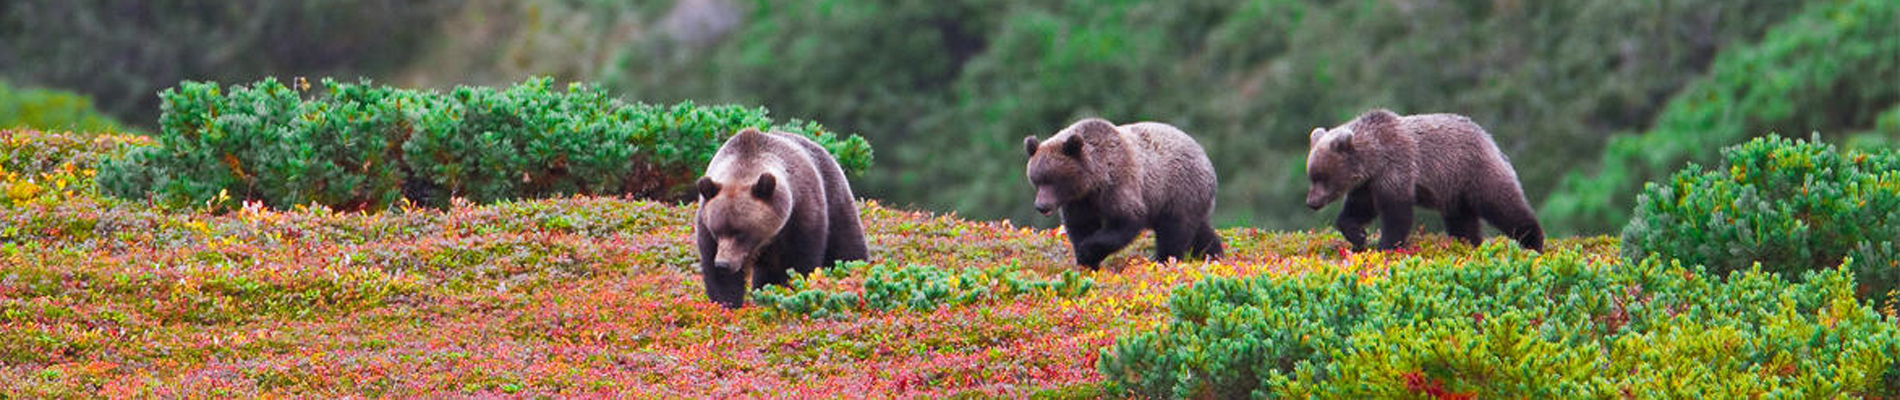 Bears and Volcanoes